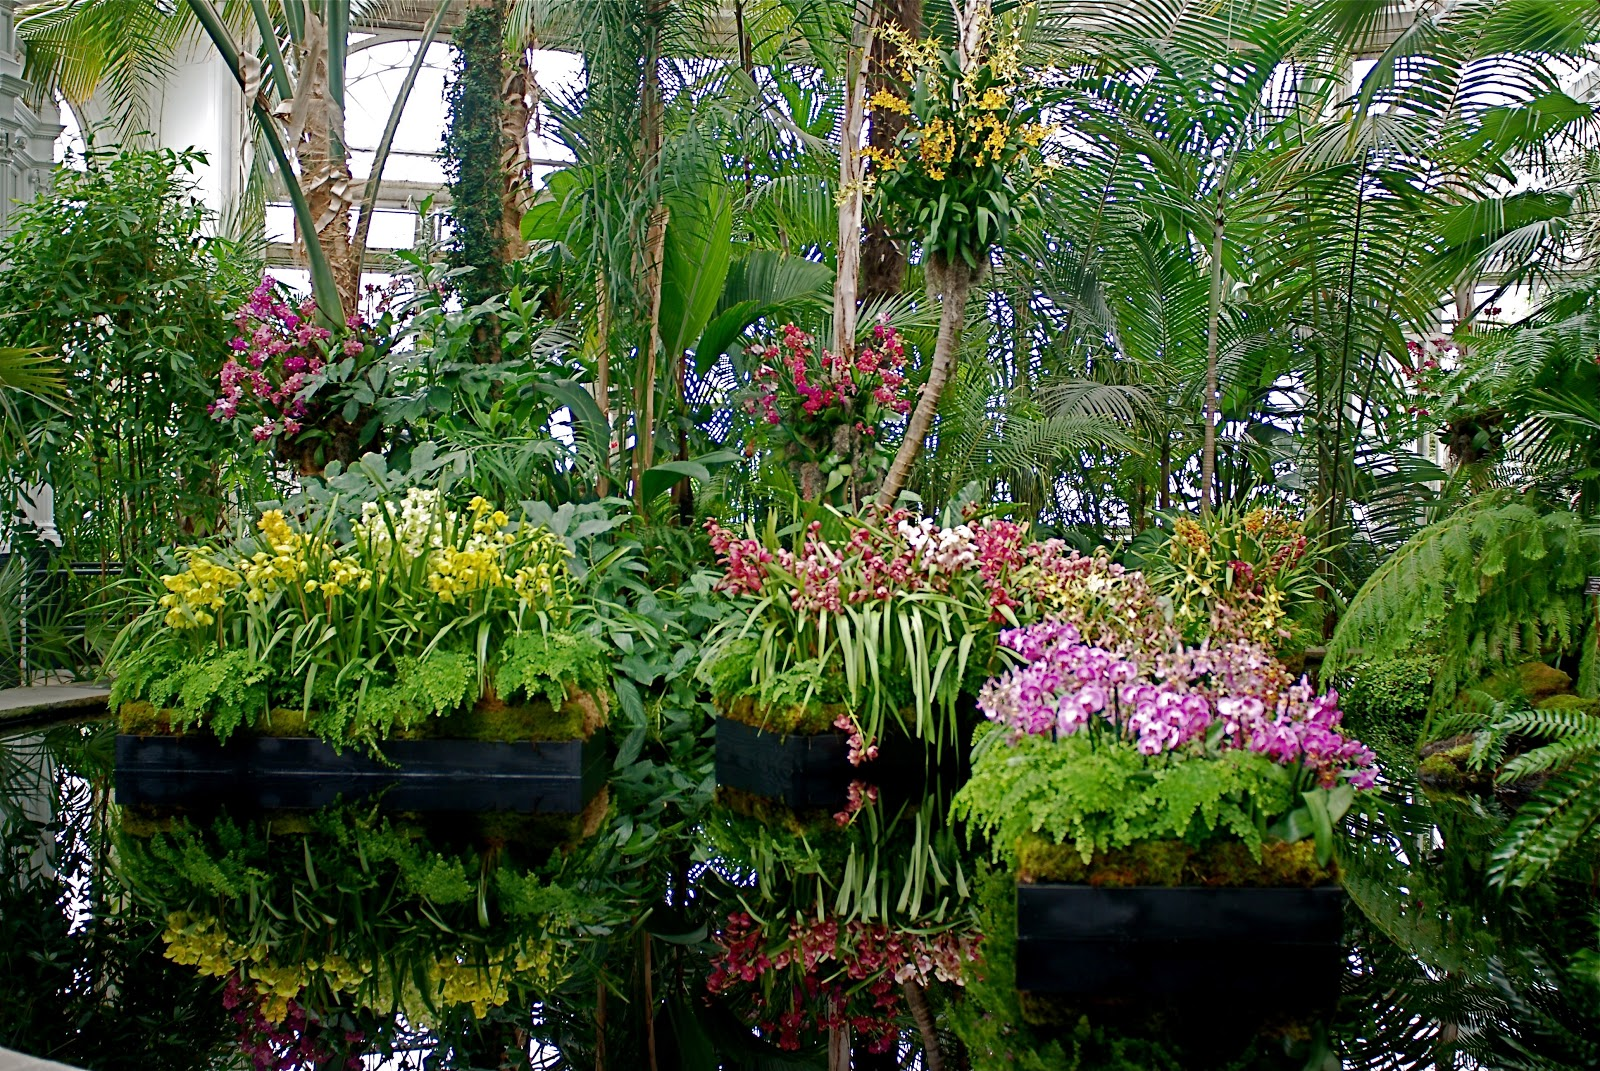 Nyc Nyc 11th Annual Orchid Show Opens At The New York Botanical Garden In The Bronx